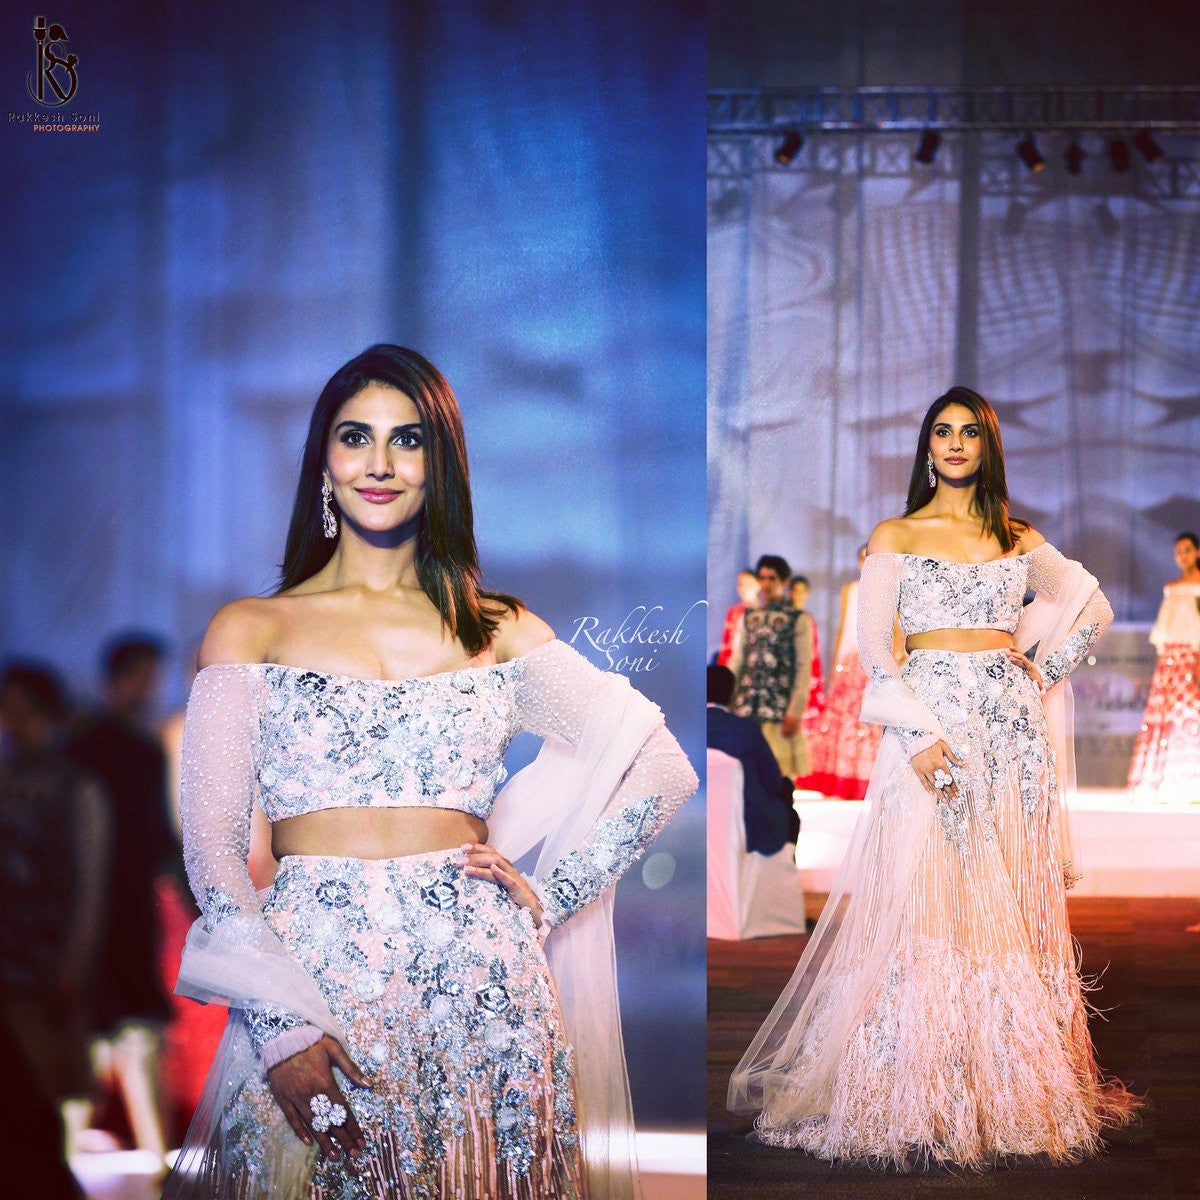 Vaani Kapoor dazzles everyone as she walks the ramp for Manish Malhotra's collection baby Pink Lehenga at summer couture 2017 Hyderabad